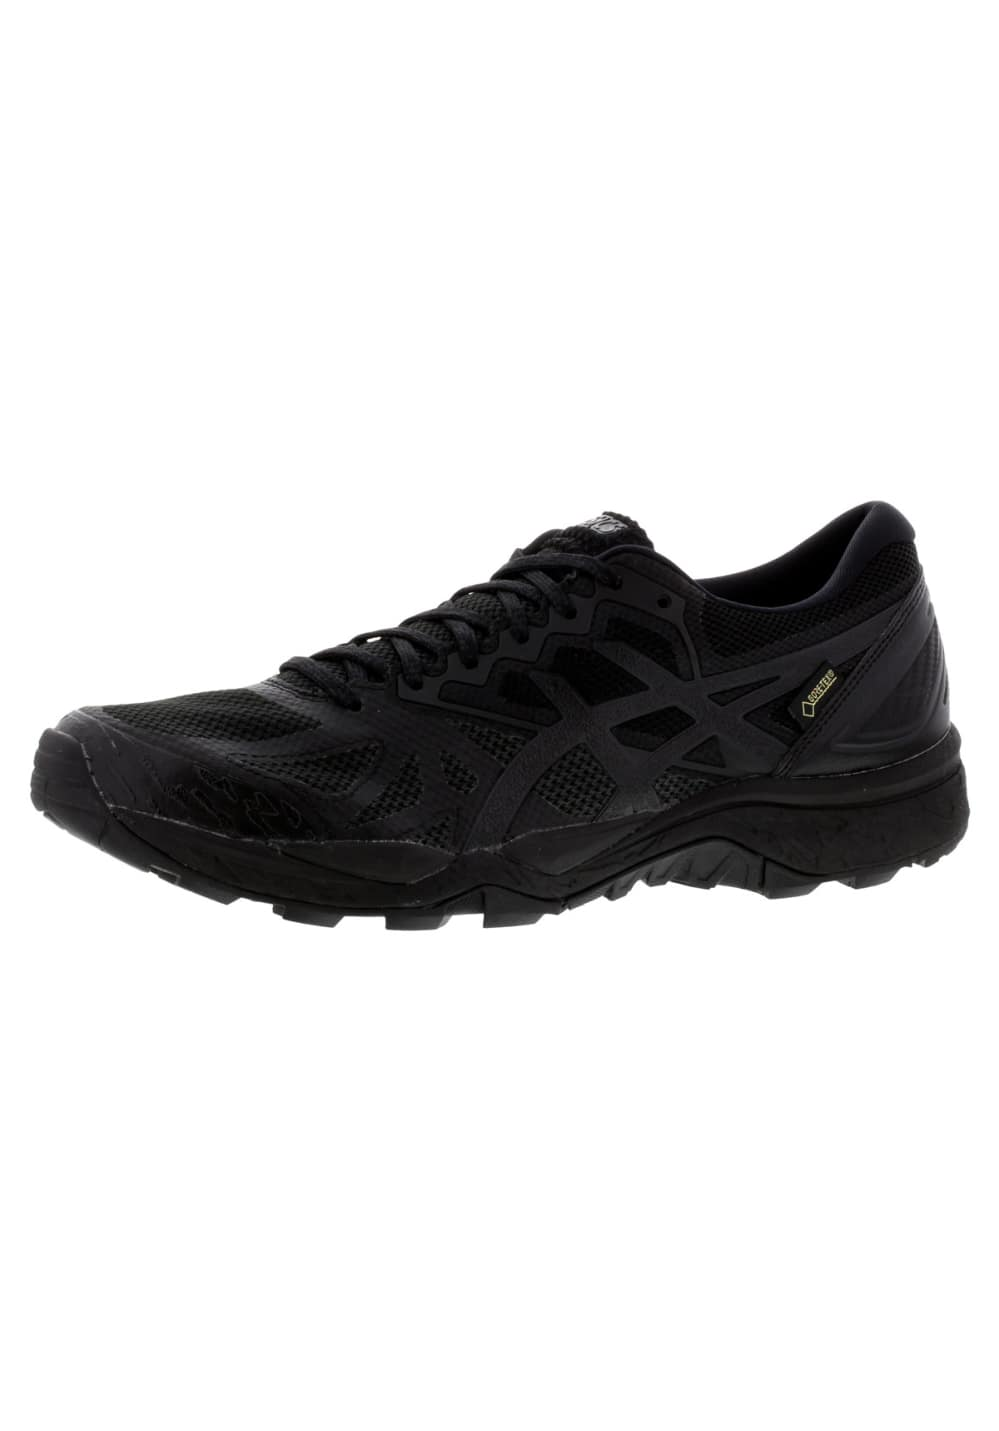 newest ac964 65830 Next. New. ASICS. GEL-Fujitrabuco 6 ...